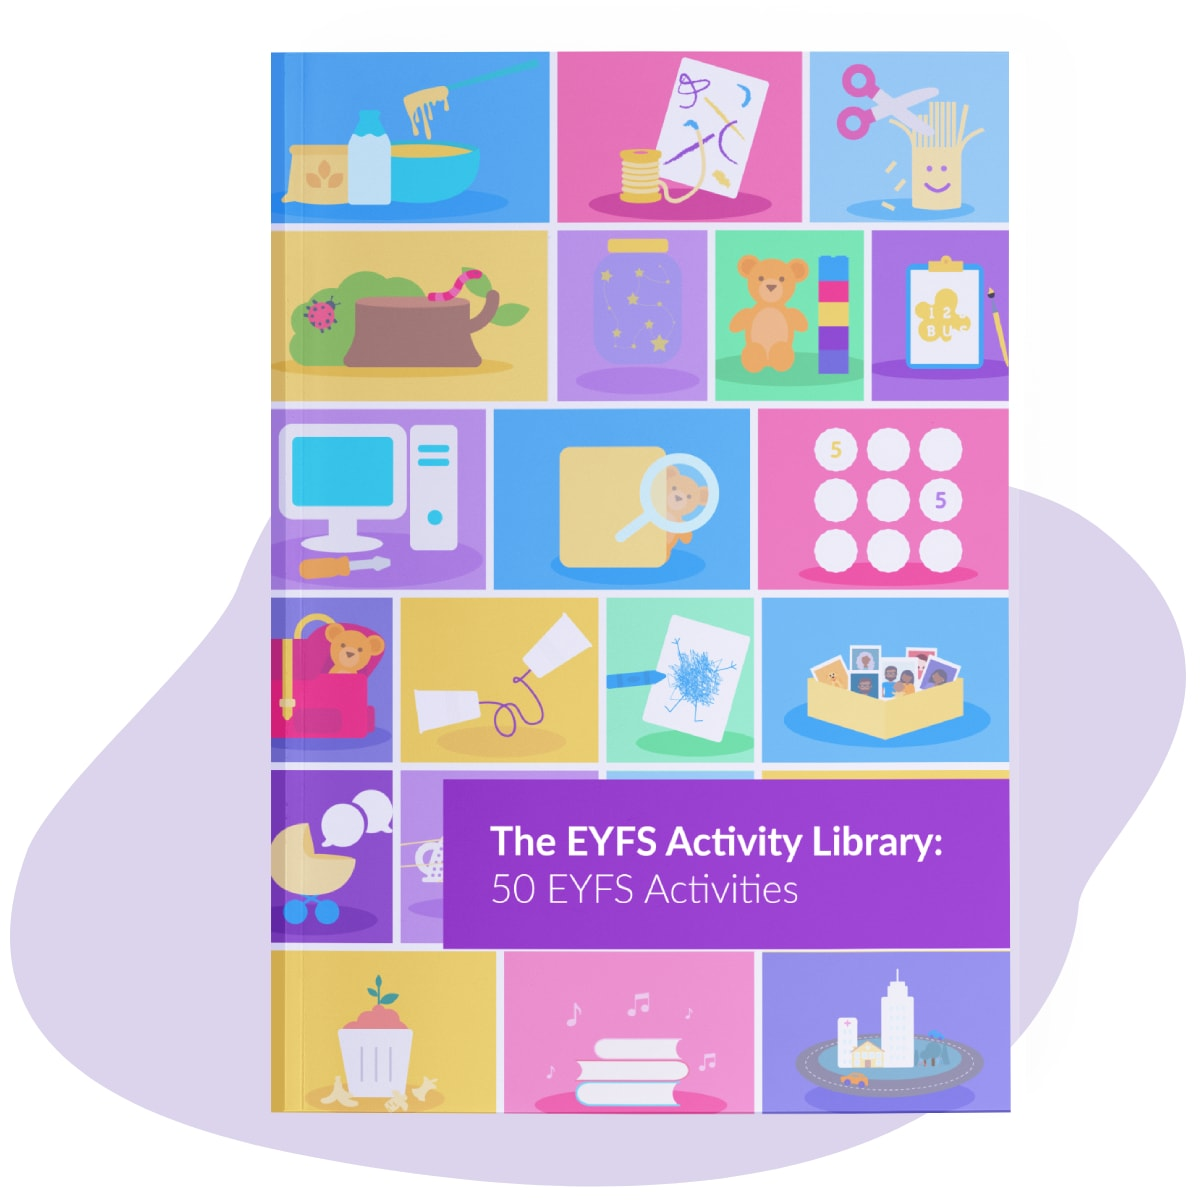 The EYFS Activity Library: 50 EYFS Activities